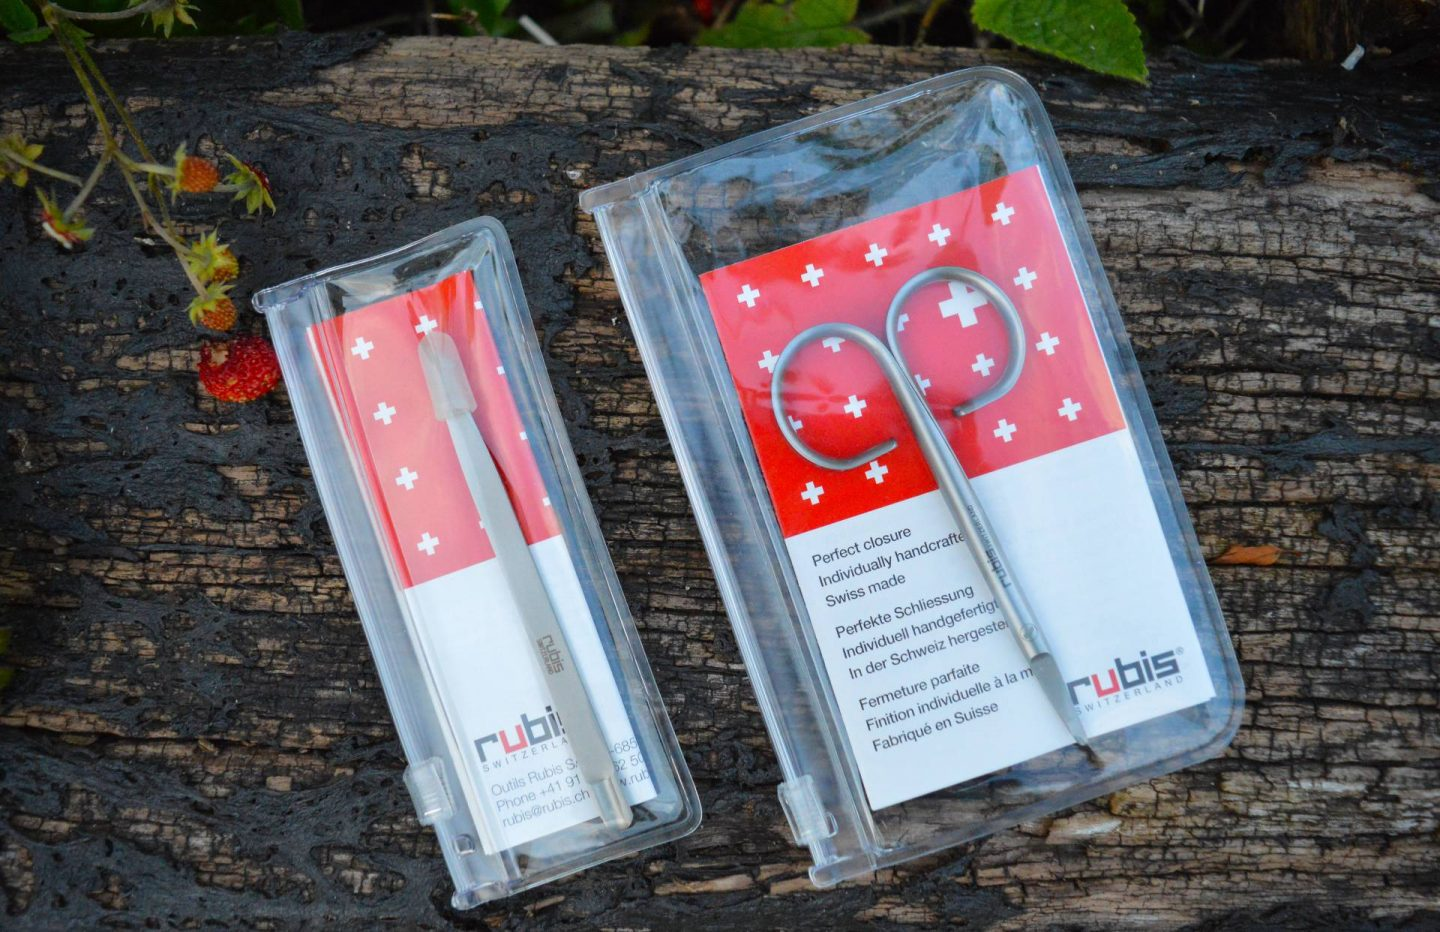 June Beauty Favourites, Rubi nail scissors and cuticle tool